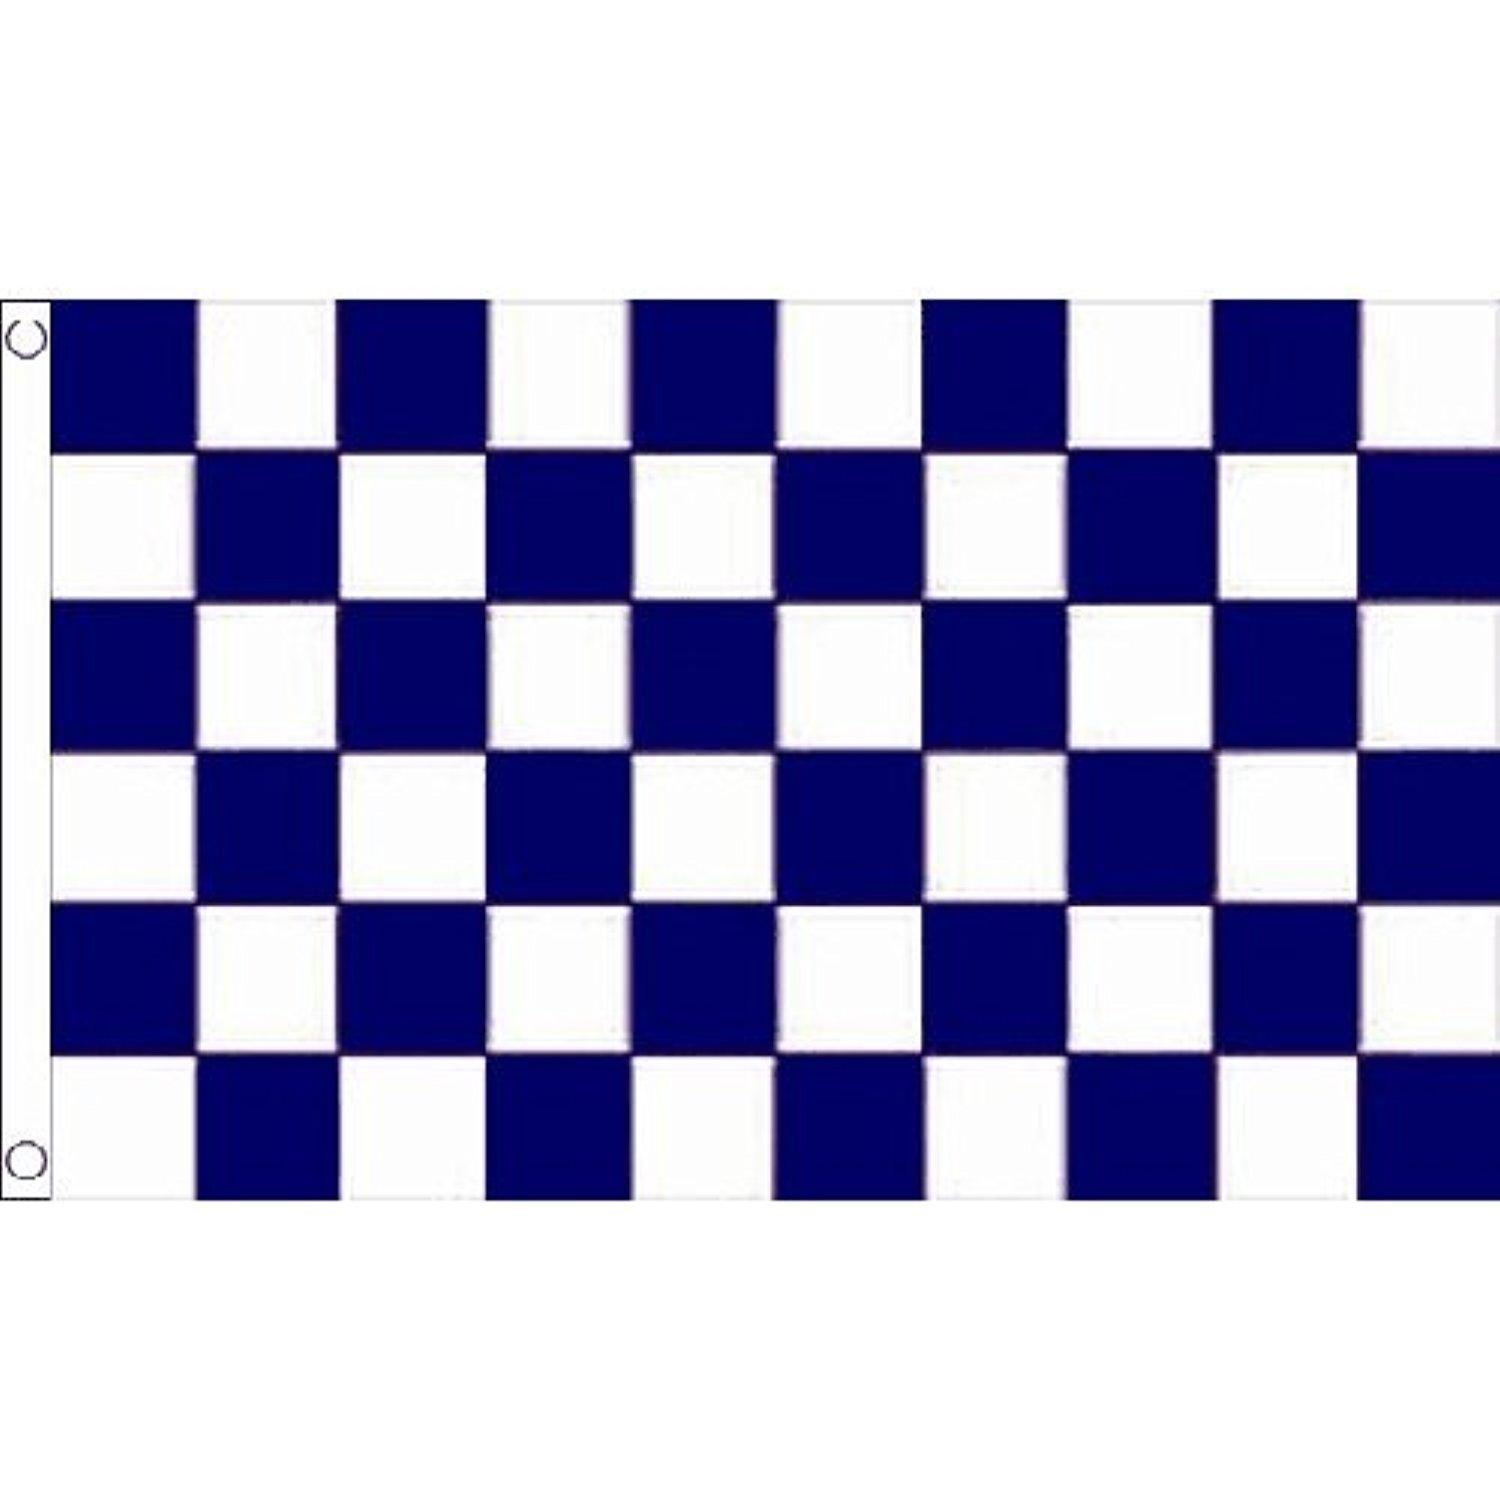 Navy & White Check Small Flag 3Ft X 2Ft Chequered Football Sports Banner New by Navy and White Check